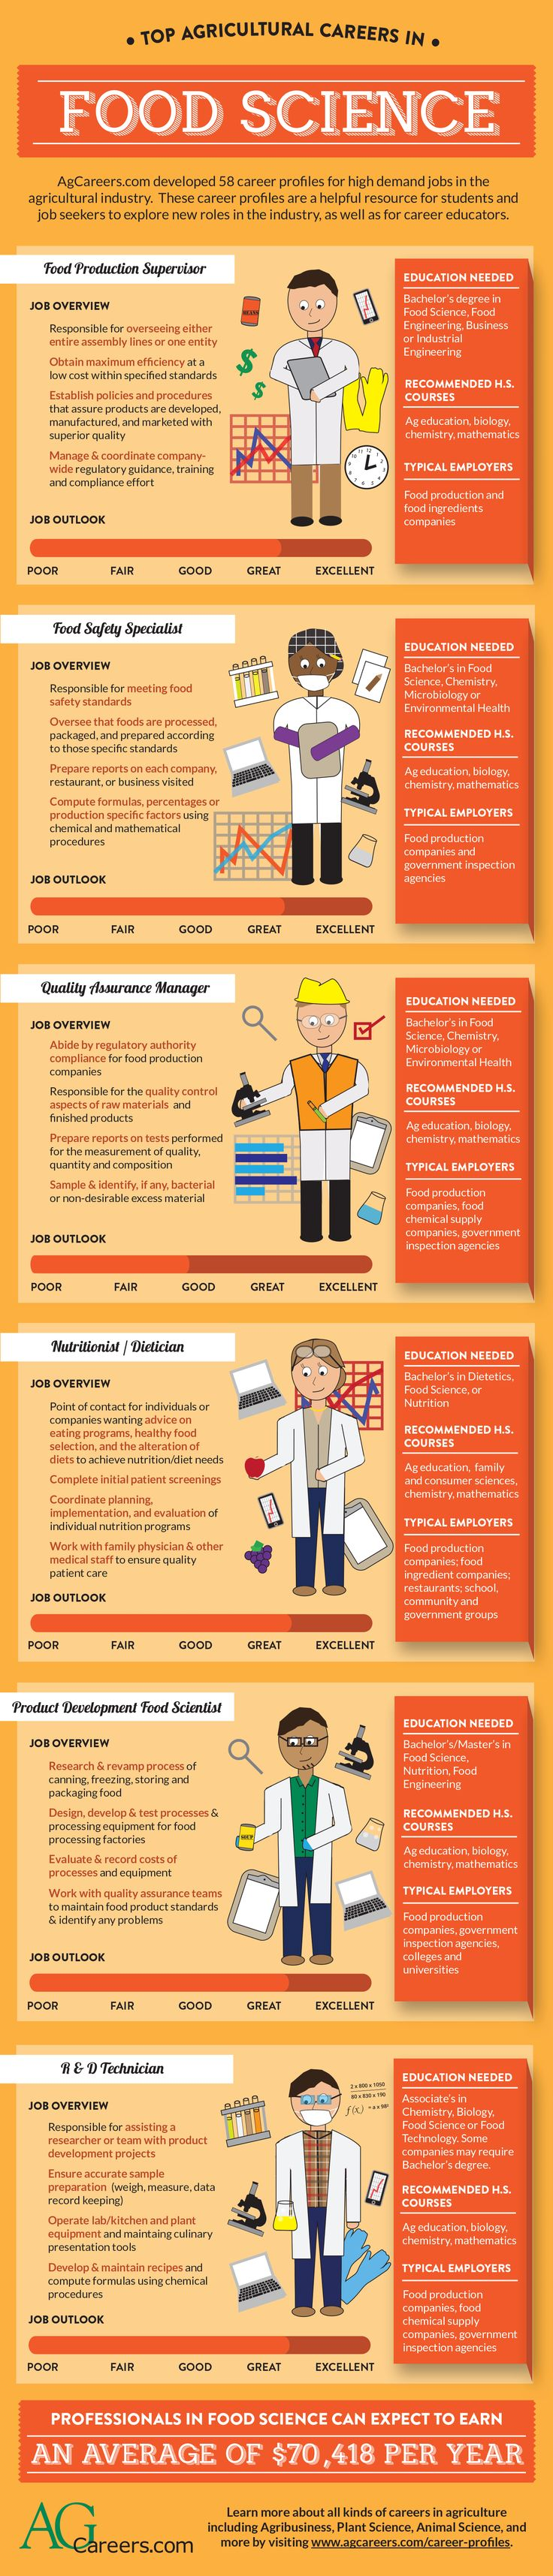 Careers in Food Science. Learn more about these careers and search for the right one for you: http://www.agcareers.com/career-profiles/